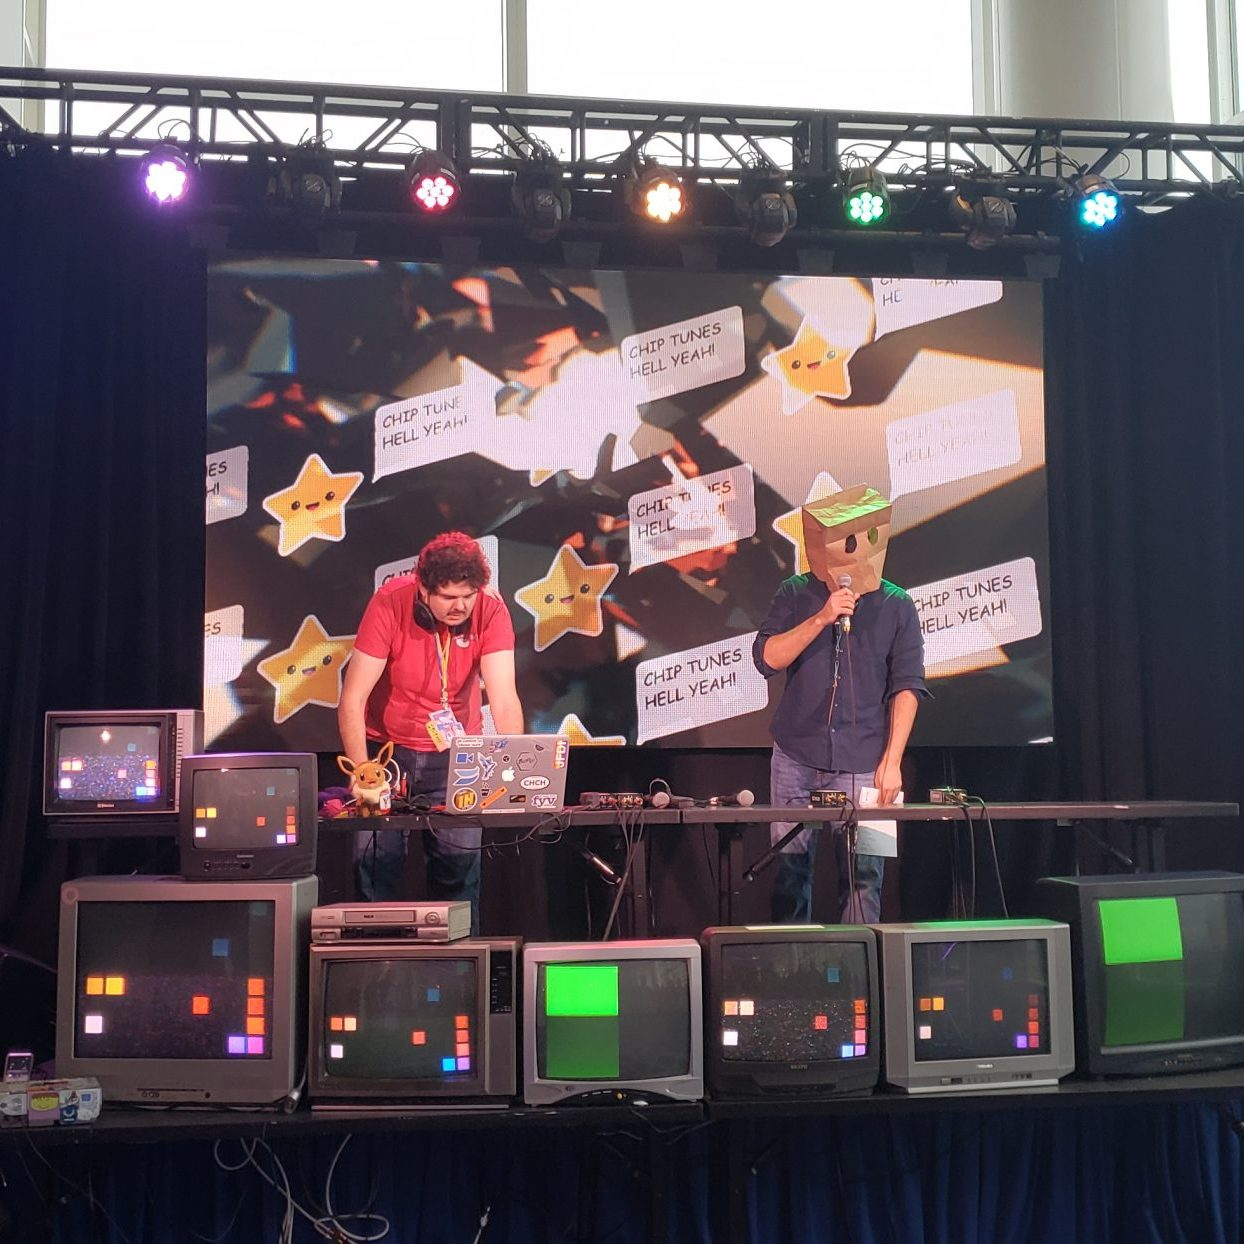 A stage at the Magfest chiptune area. There's a bunch of CRTs with pixel images on them. This area had a signup sheet and any chiptune based musicians could play. I played a set myself!